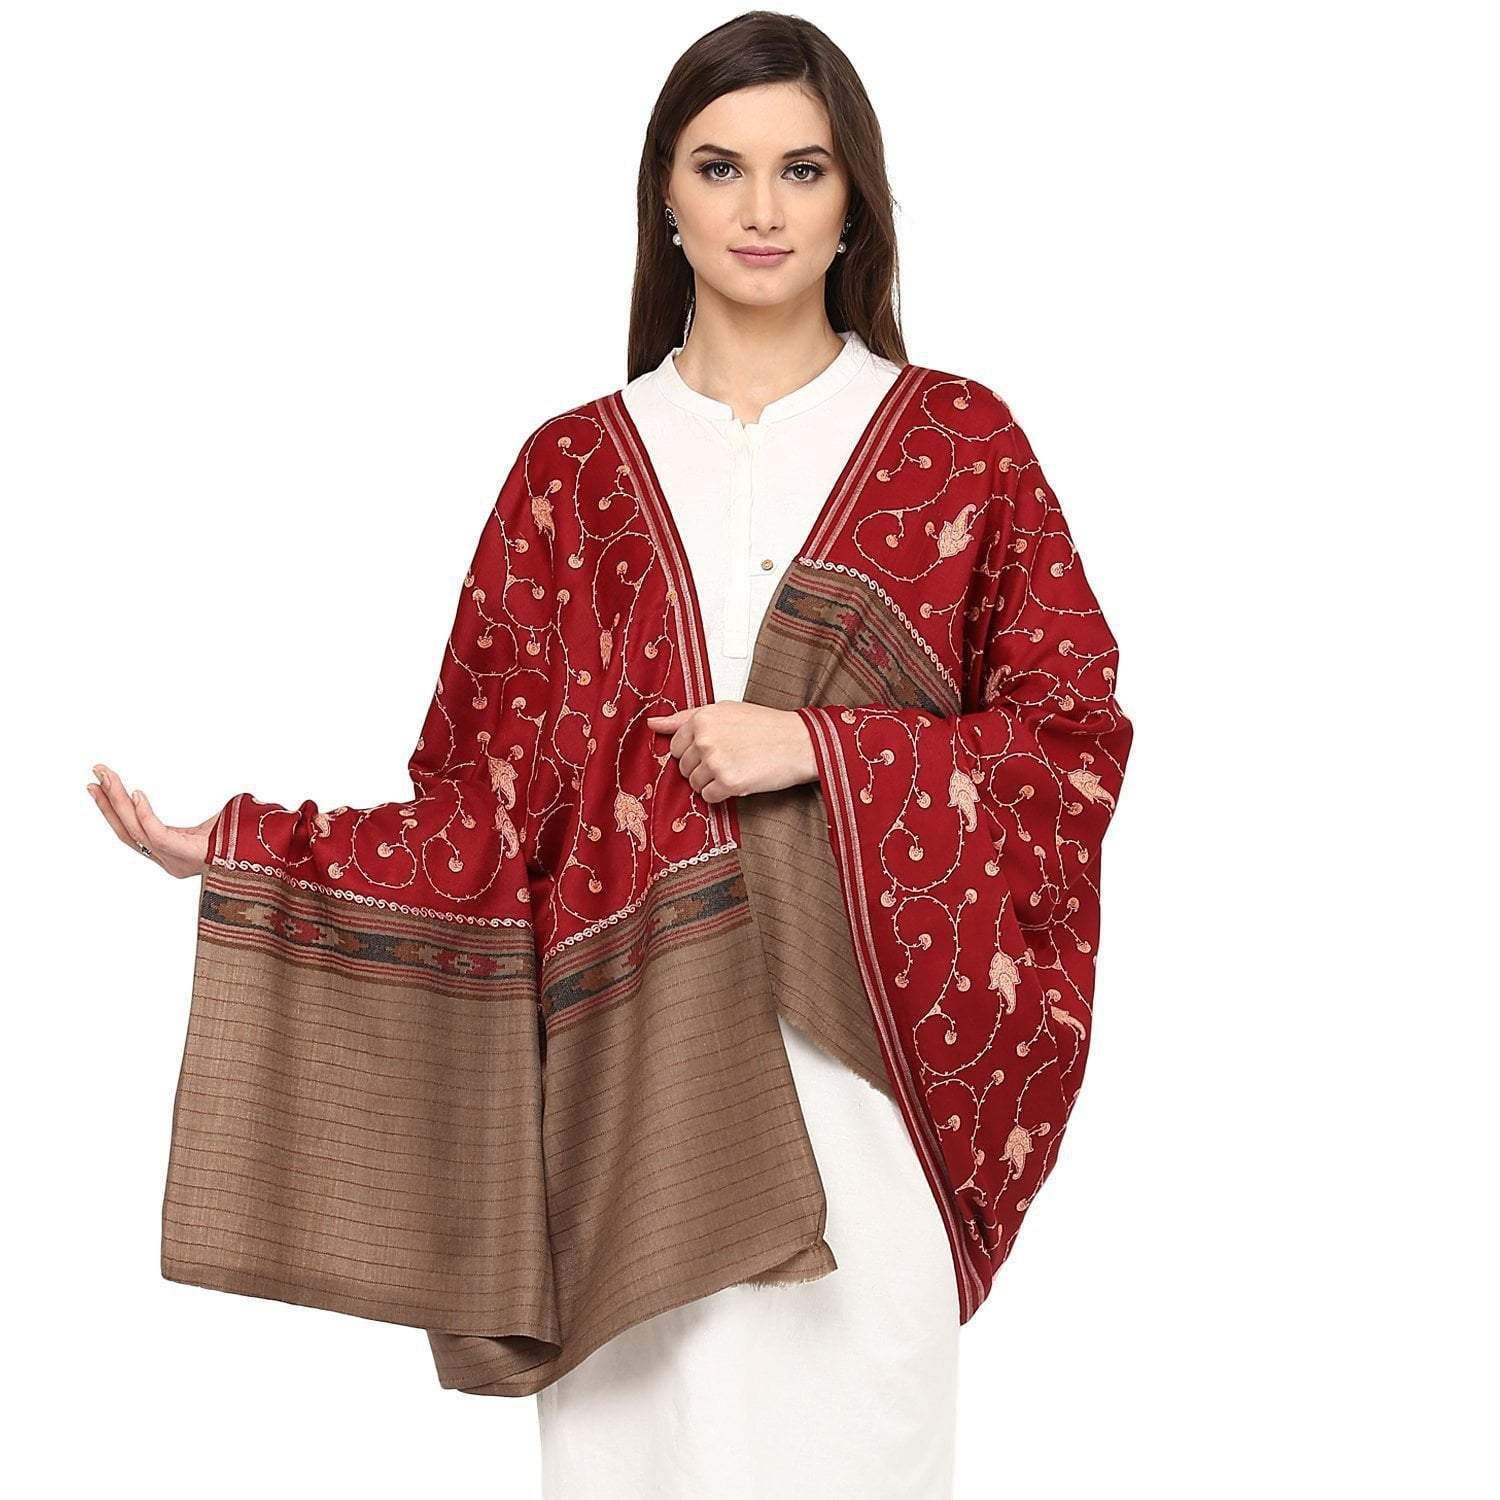 Pashtush Store Pashtush Women's Wool Shawl Maroon Jaal embroidery with Coffee palla